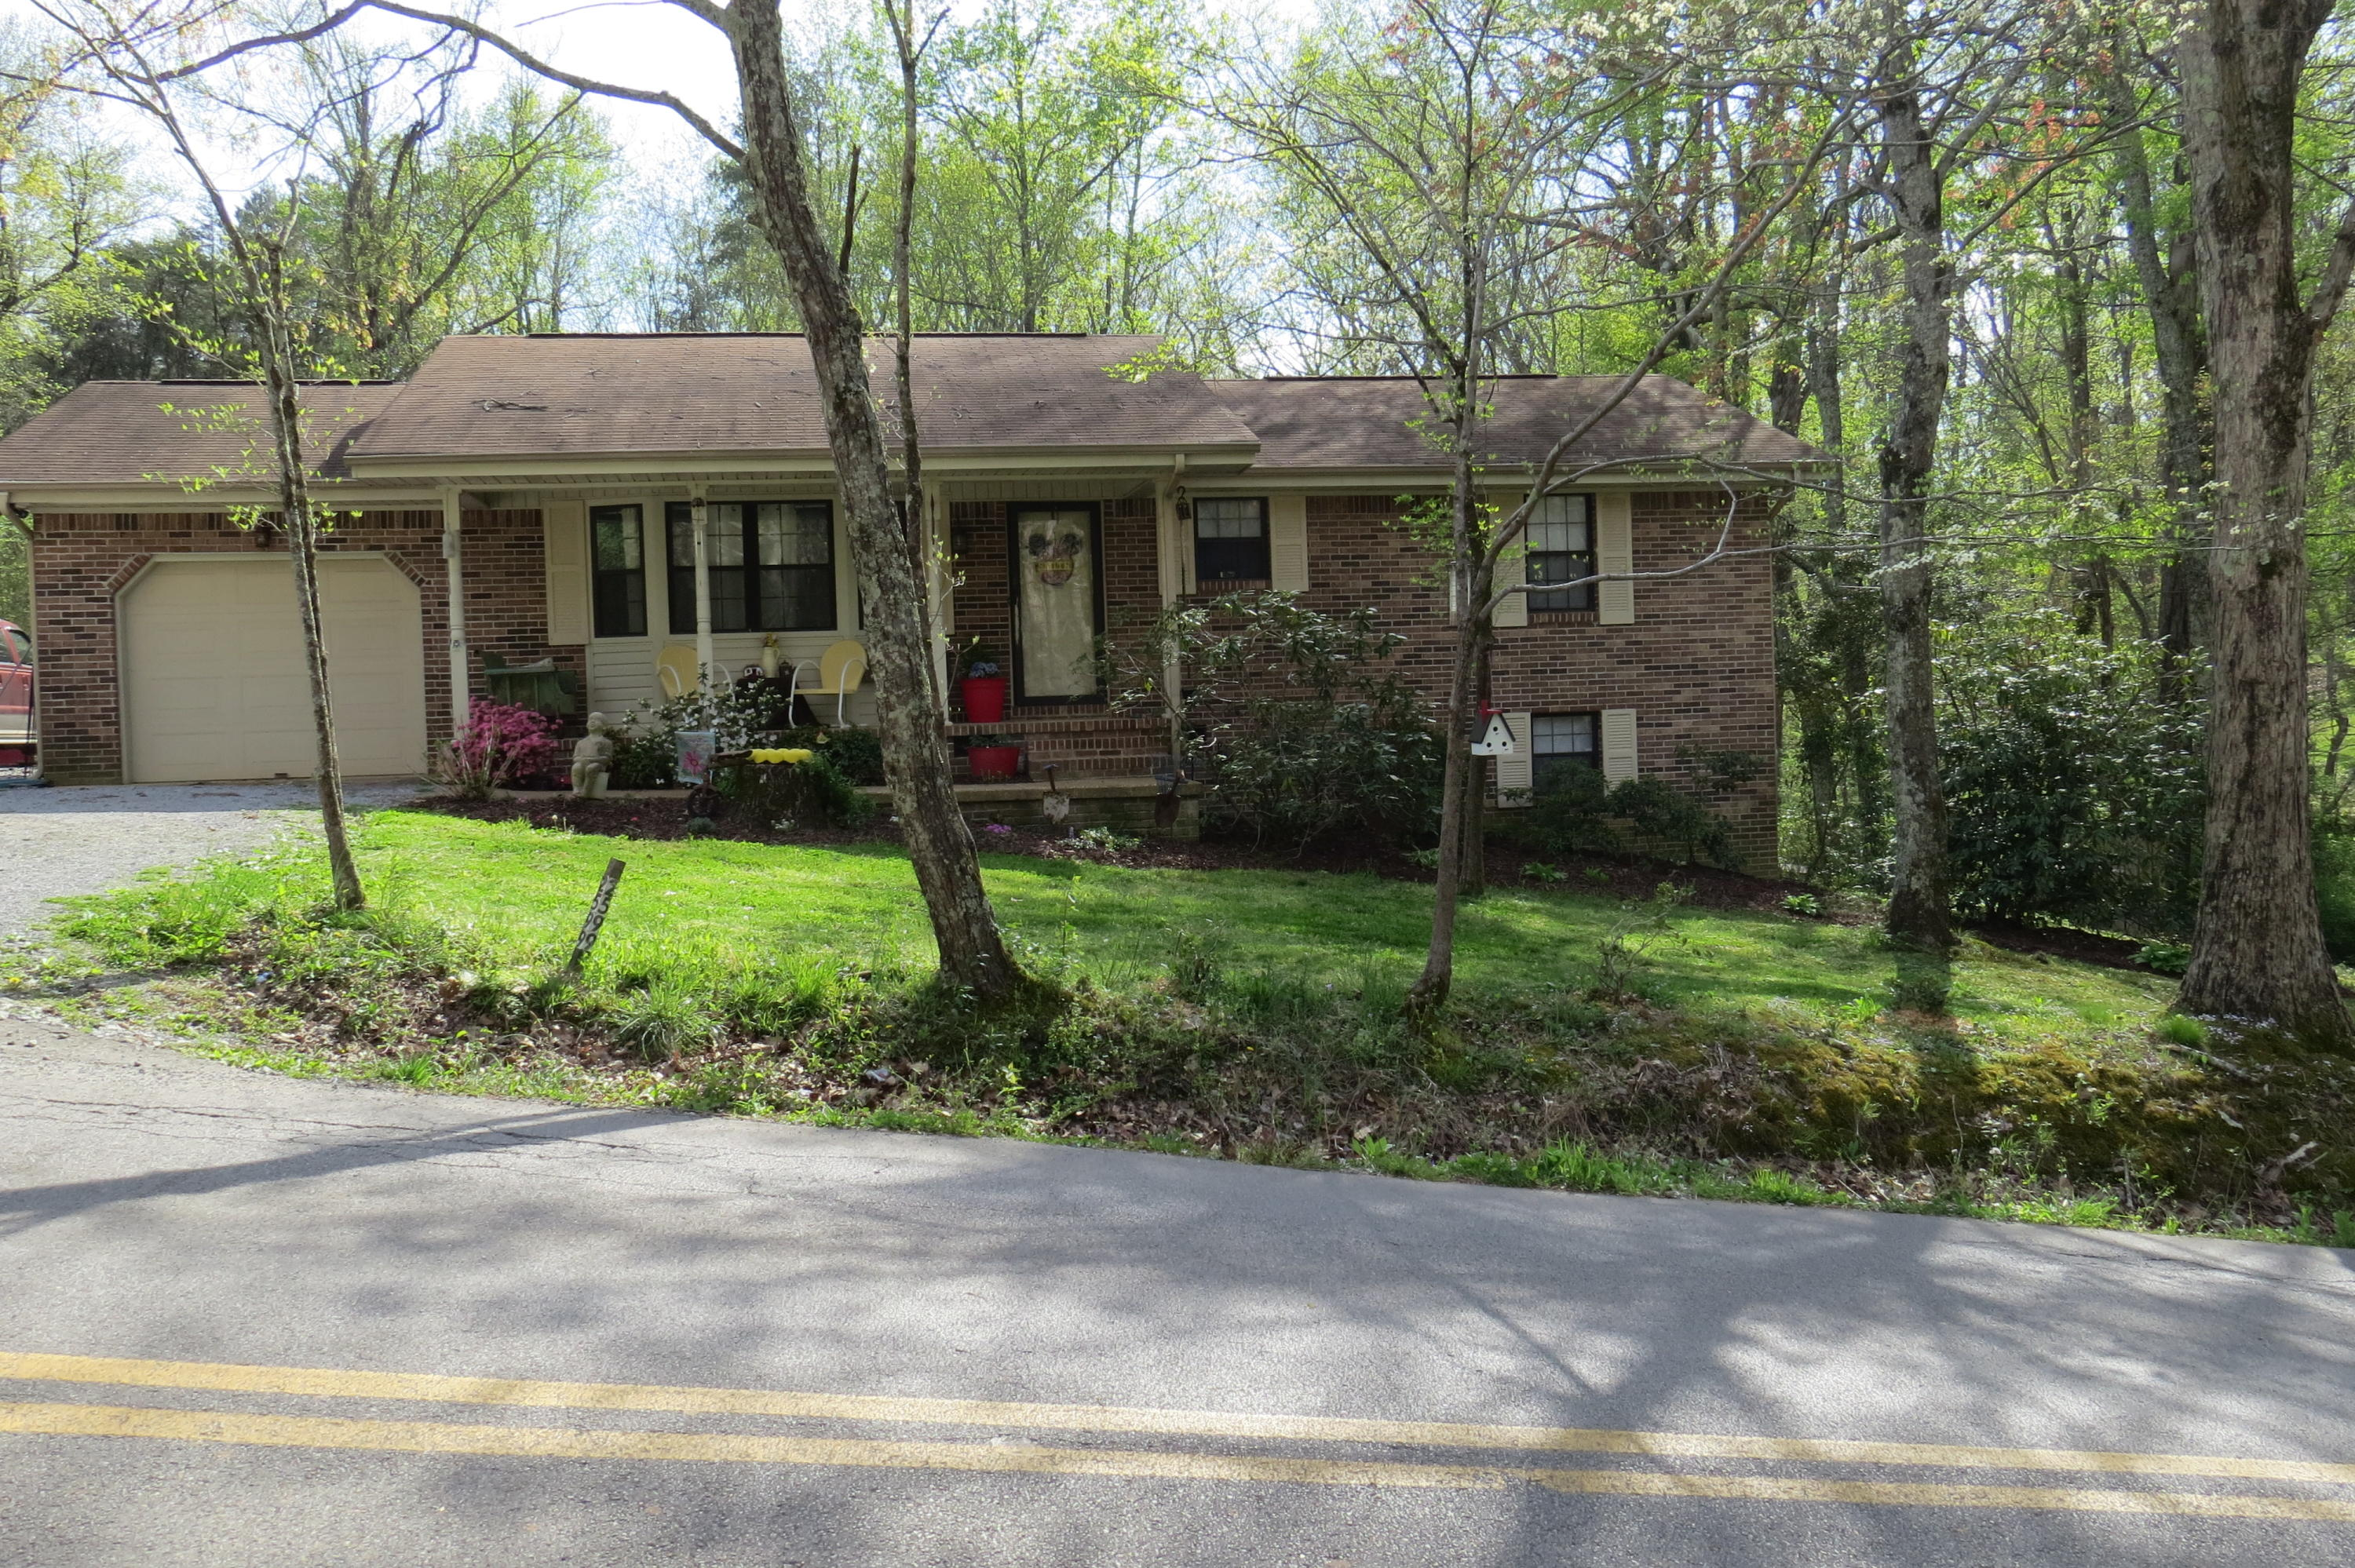 2599 Mount Olive Rd, Lookout Mountain, GA 30750